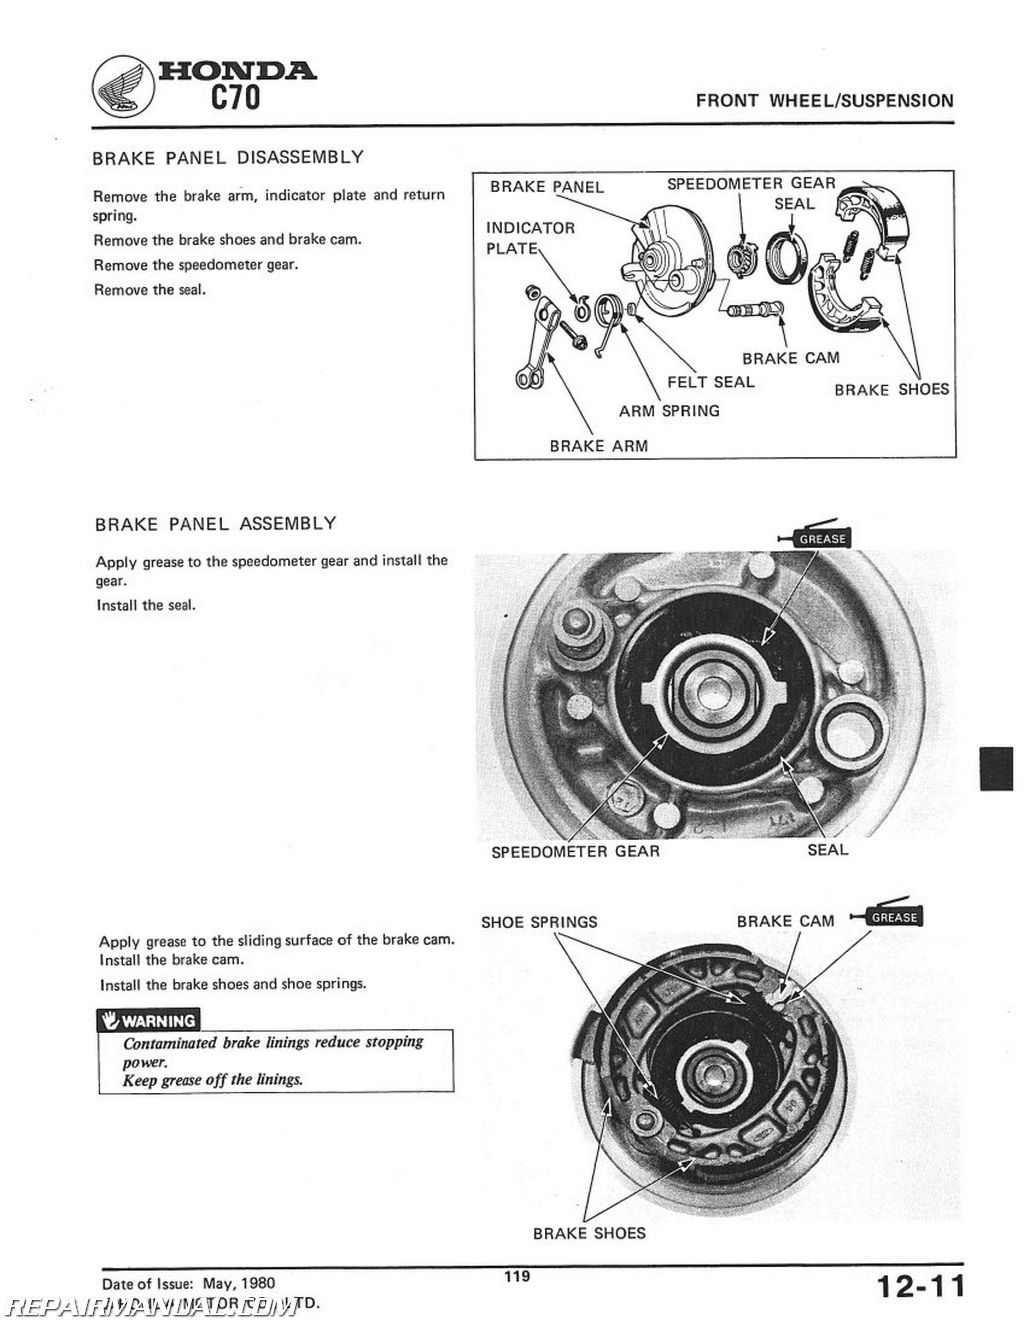 1980-1982 Honda C70 Scooter Workshop Service Repair Manual